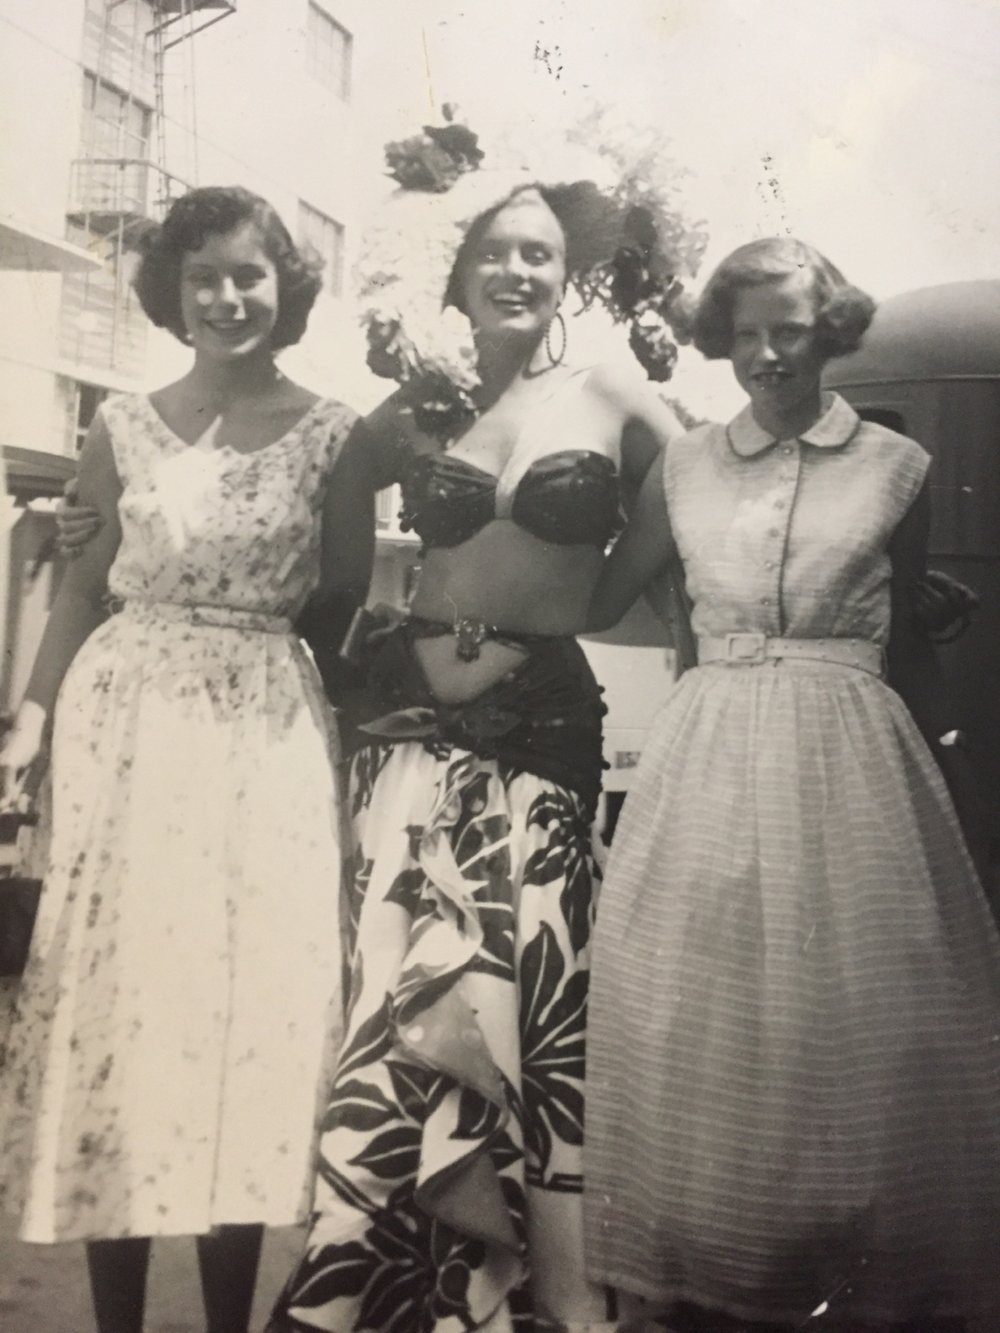 My grandma (R)  and her friend with Marilyn Monroe.